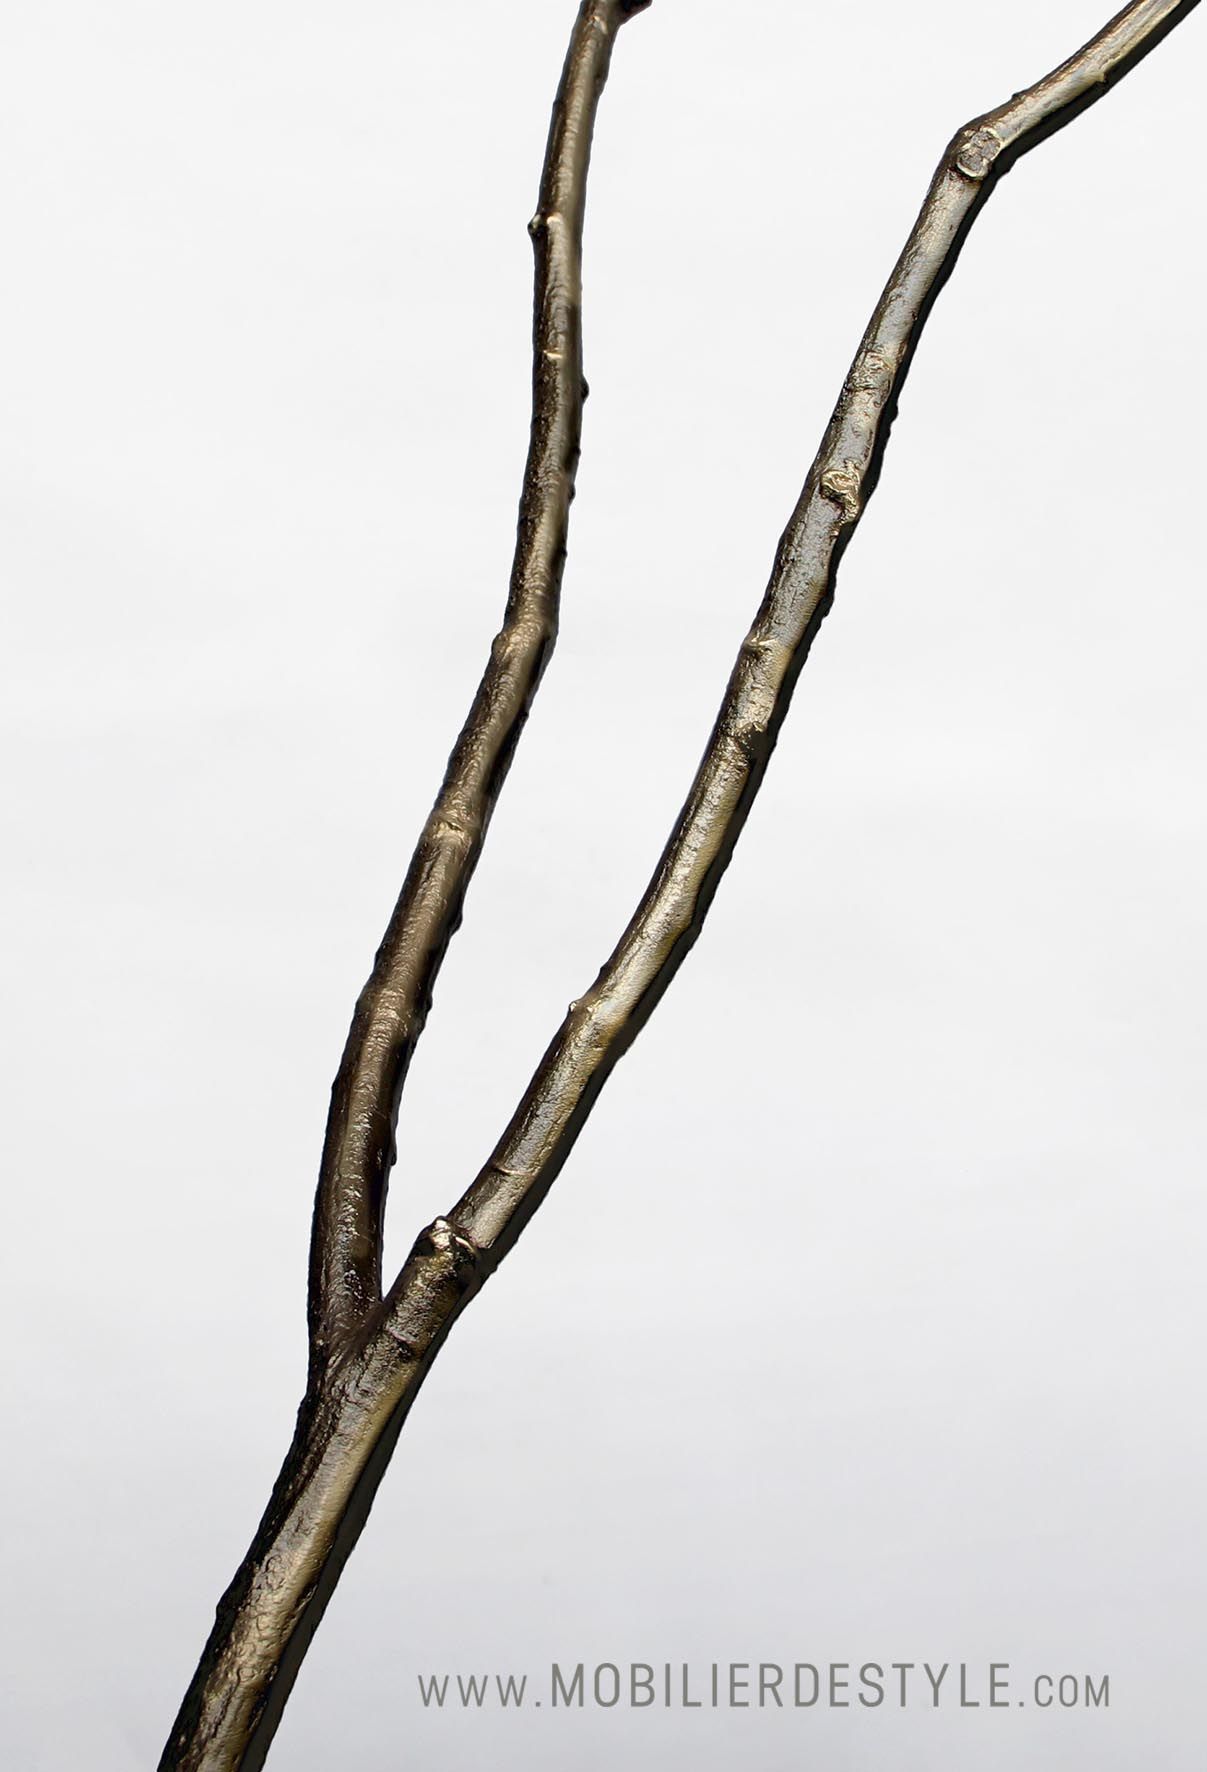 Finition : Cast patinated bronze